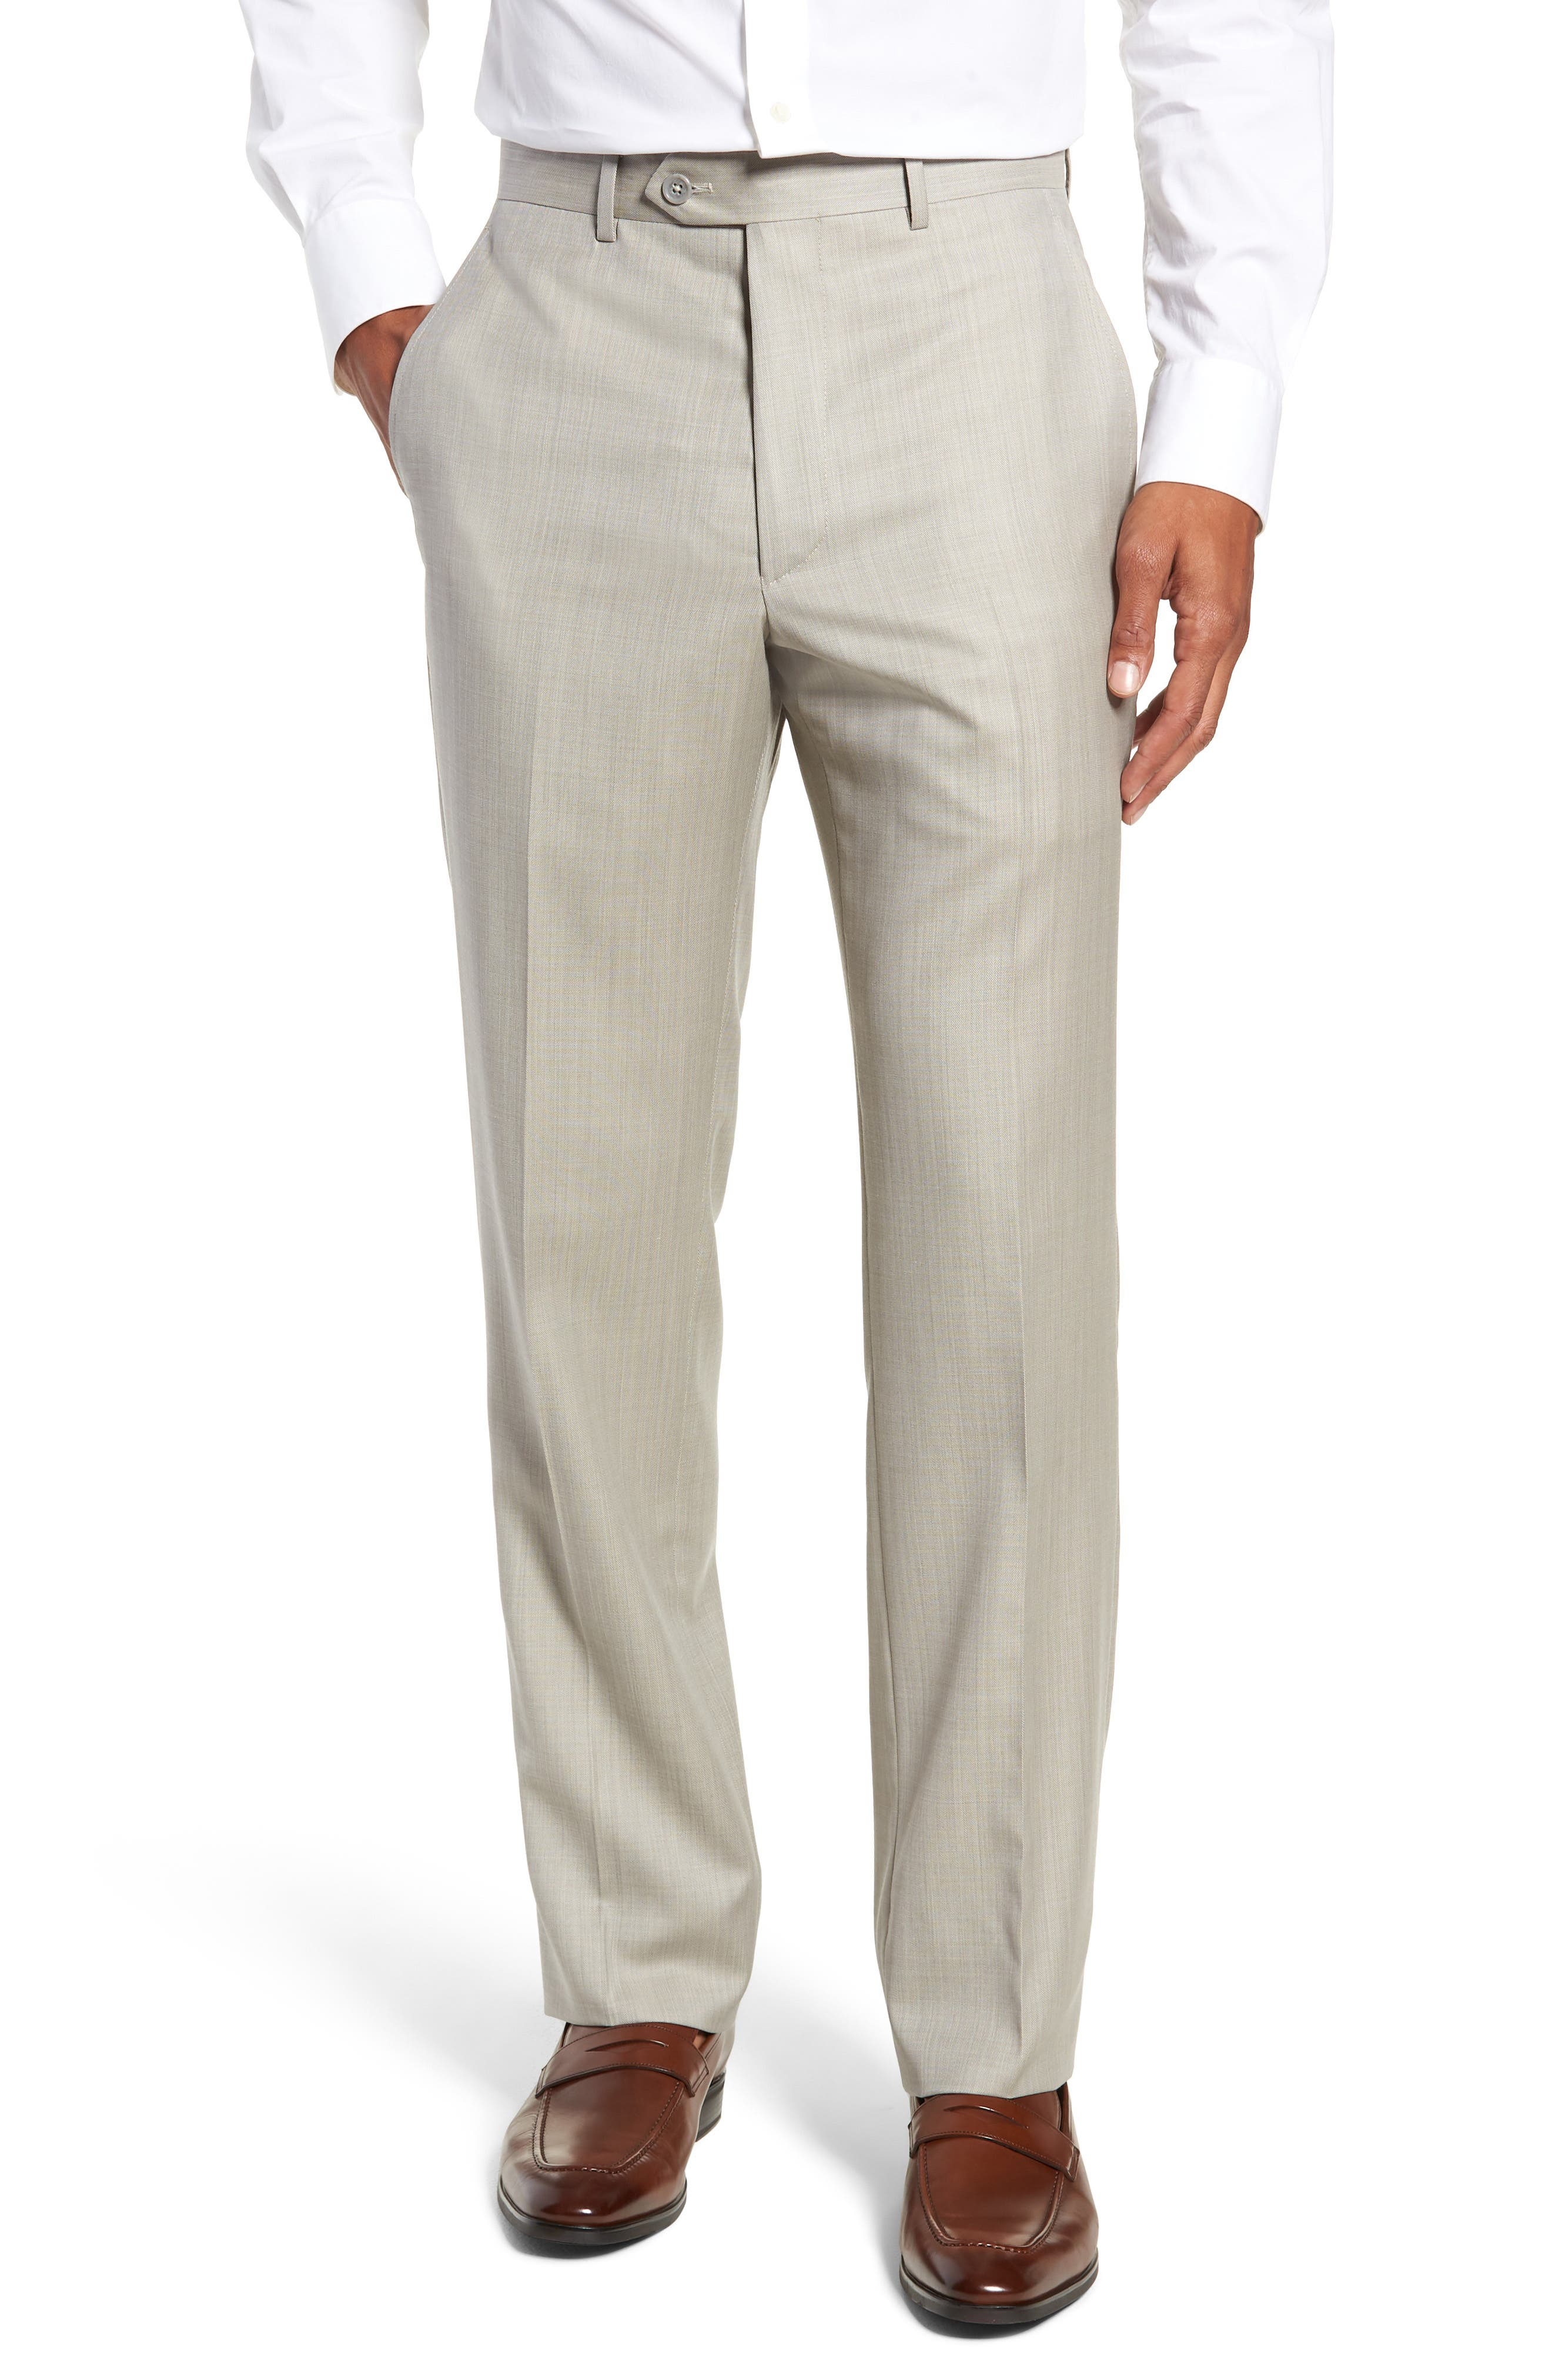 Flat Front Sharkskin Wool Trousers,                             Main thumbnail 1, color,                             SAND